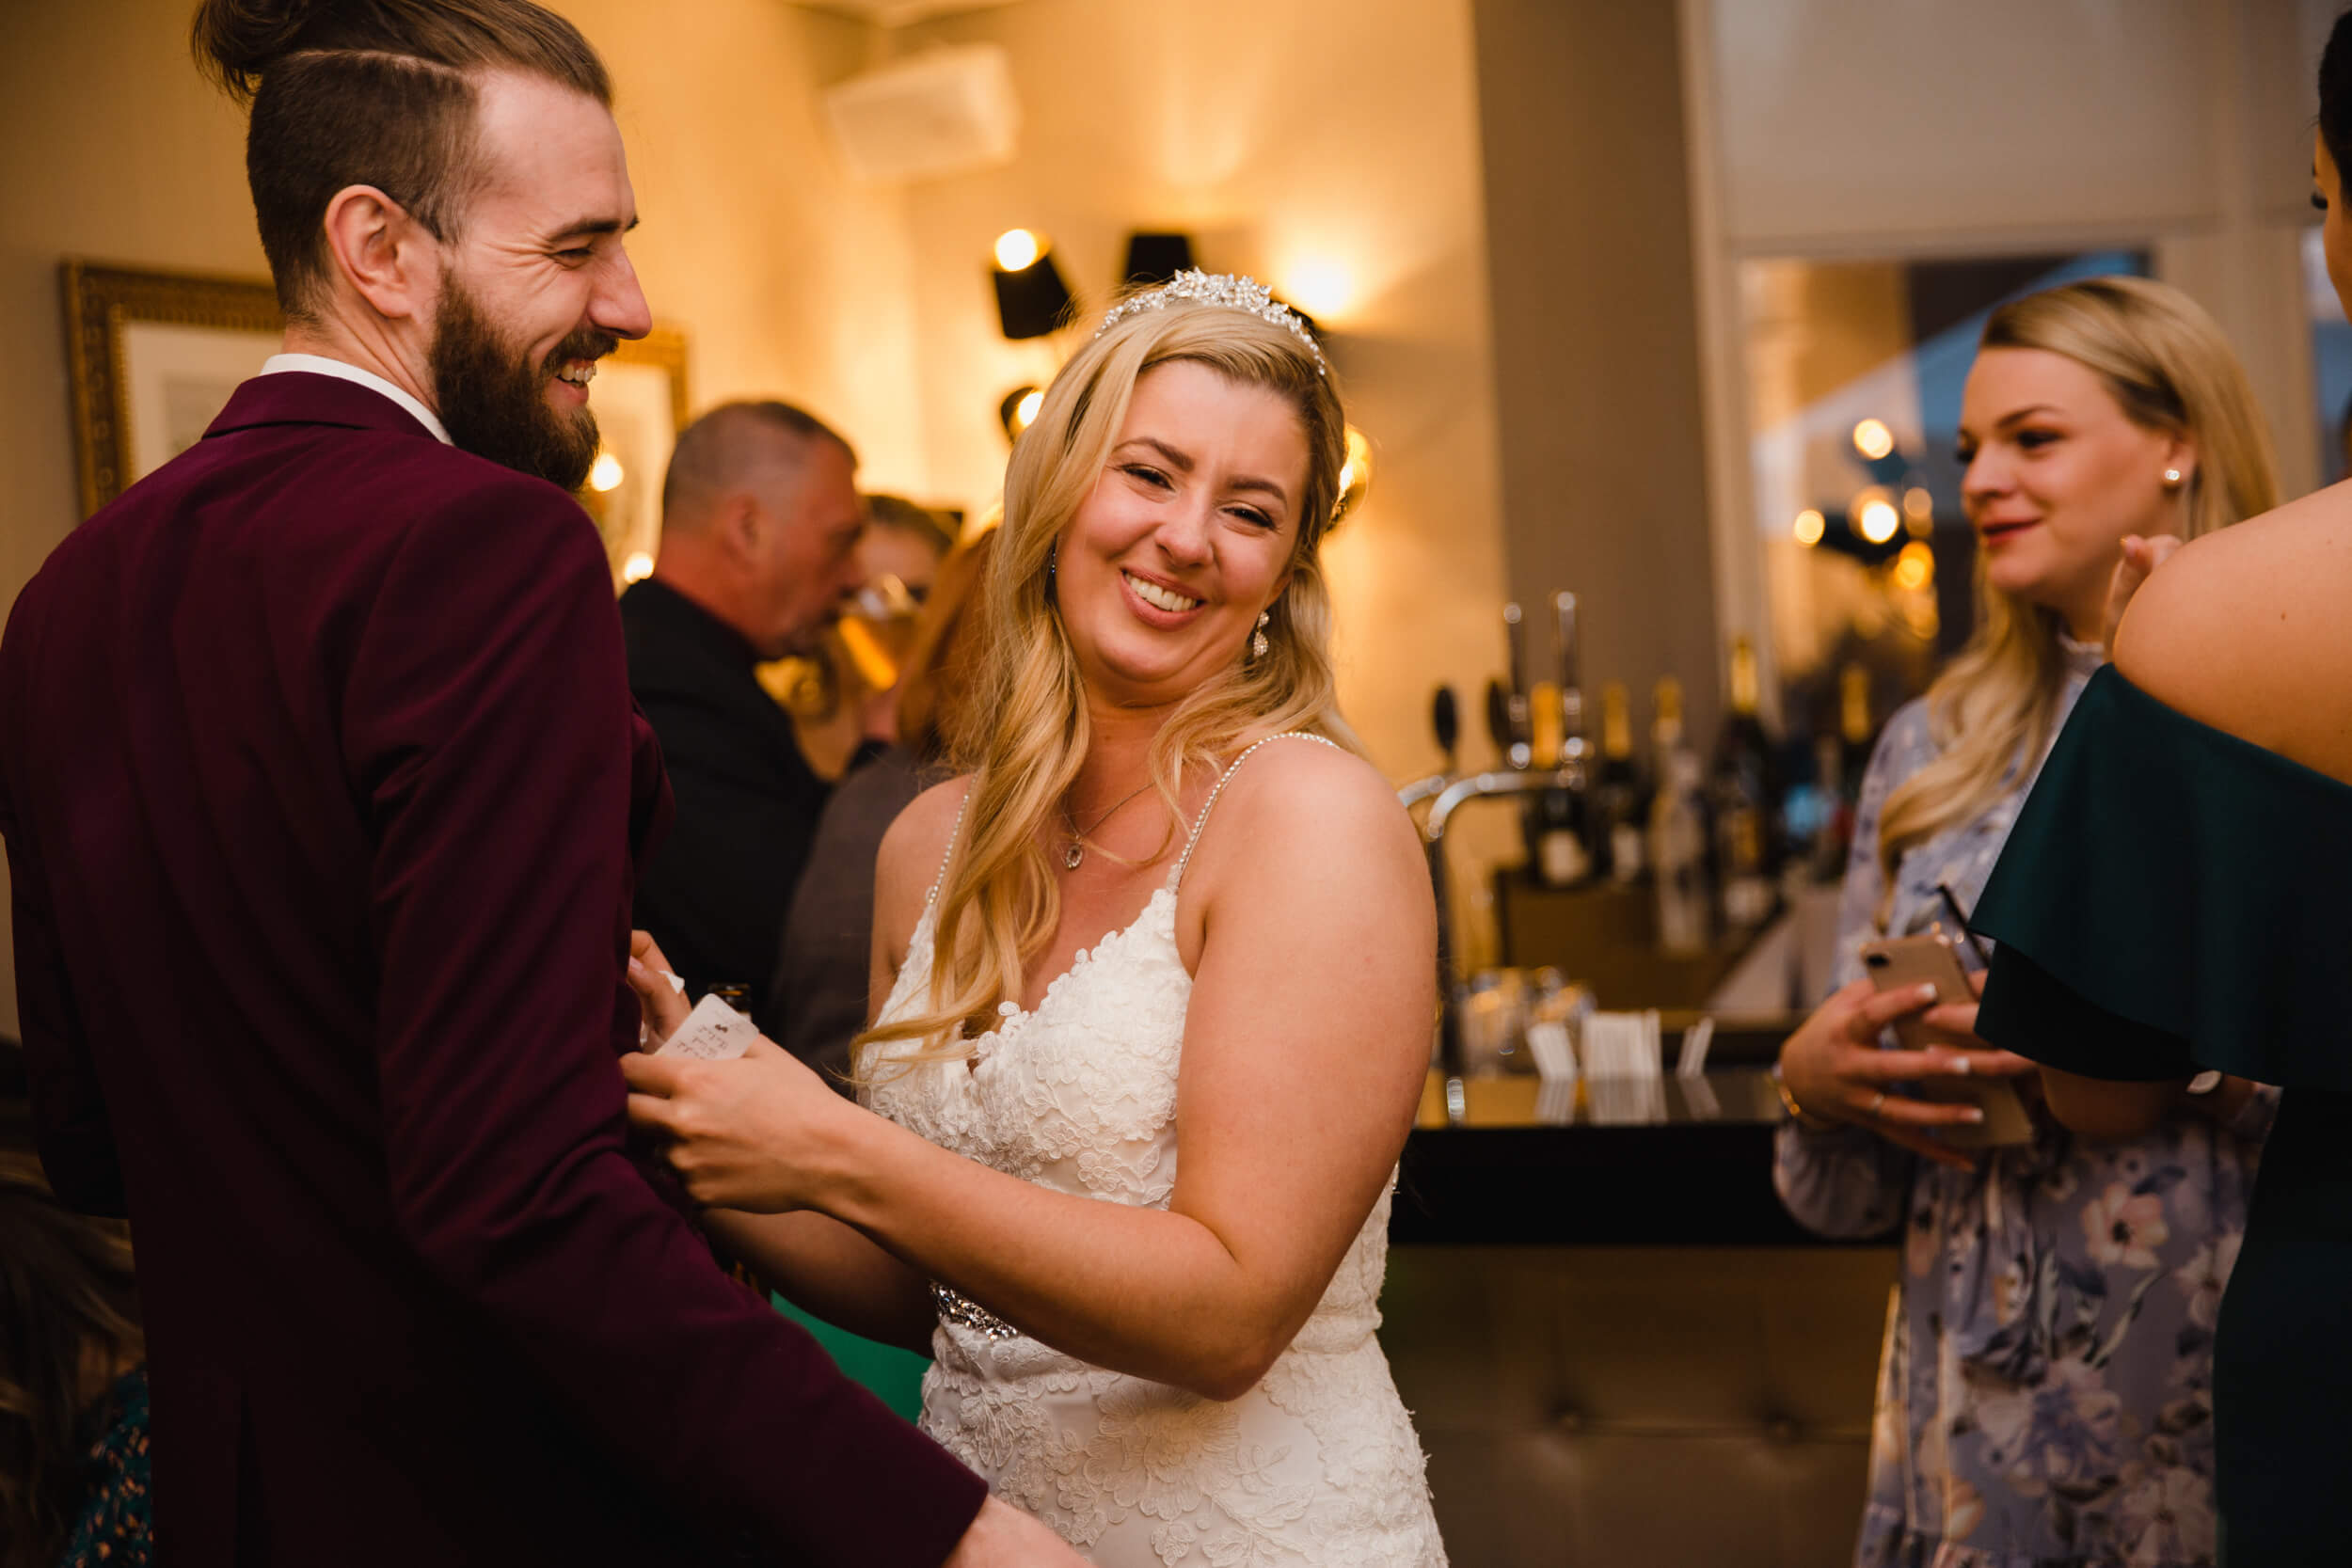 bride laughing and sharing joke with friend on dance floor